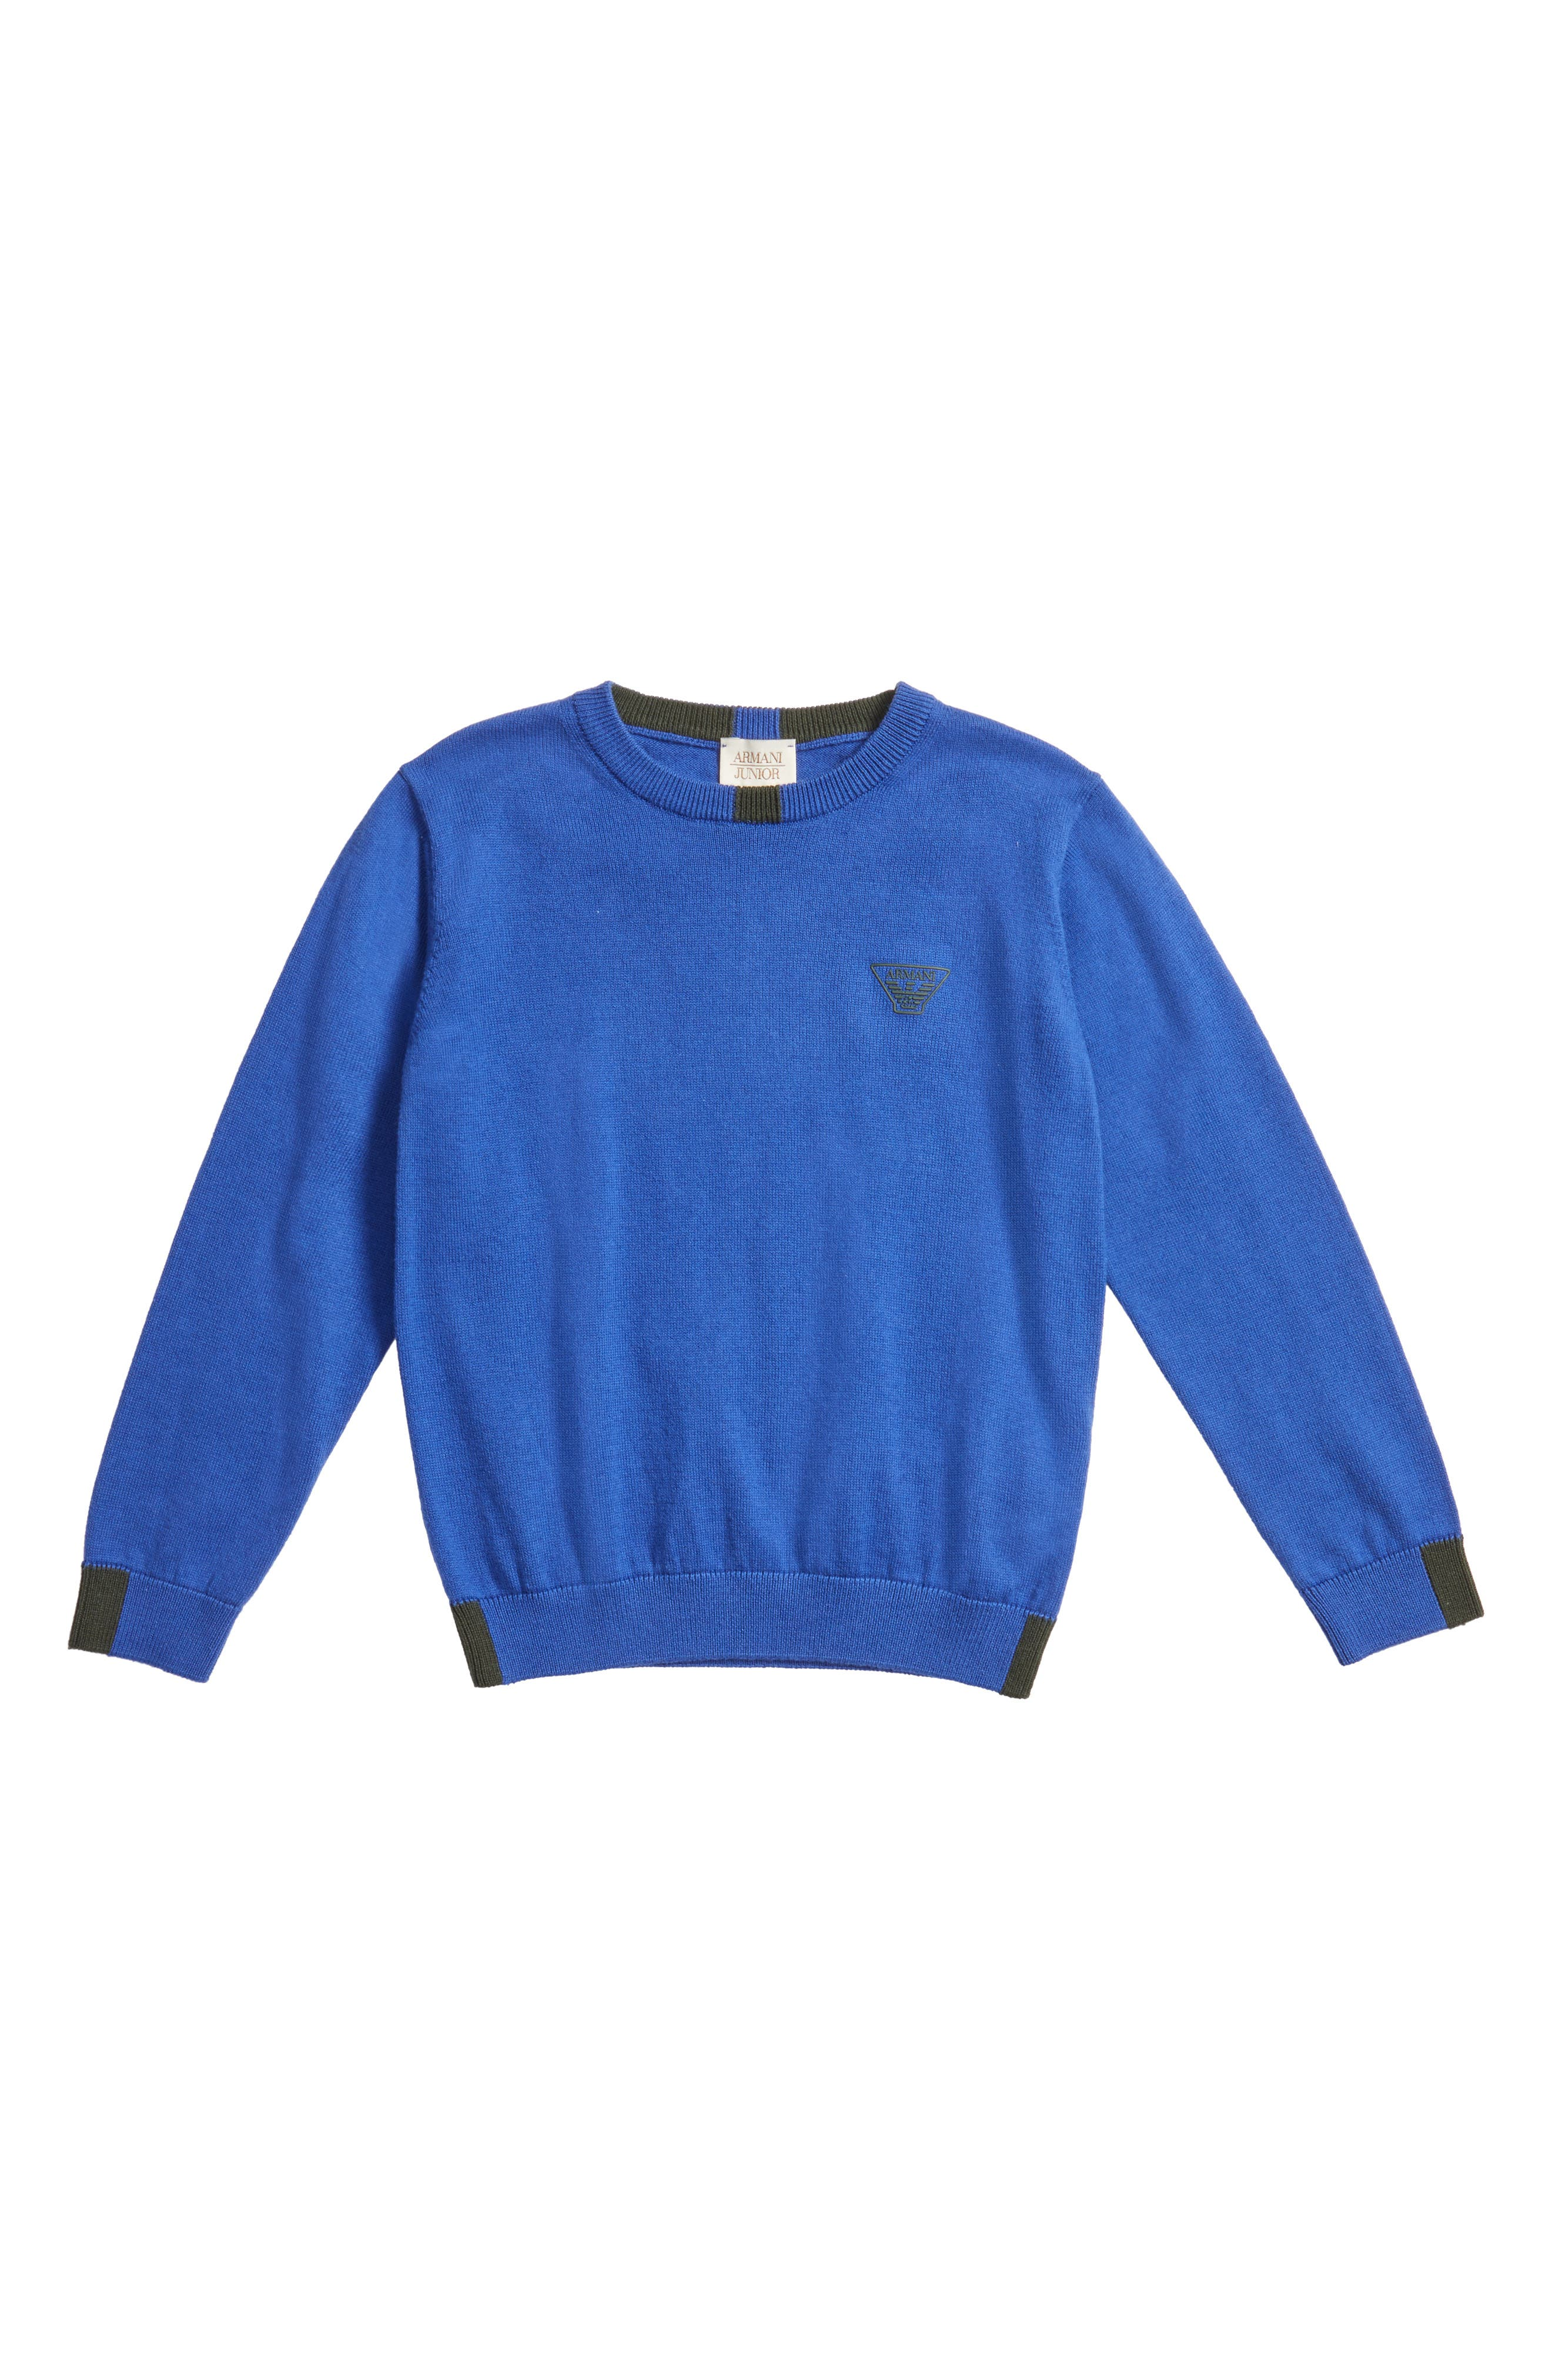 Sweater,                         Main,                         color, 484